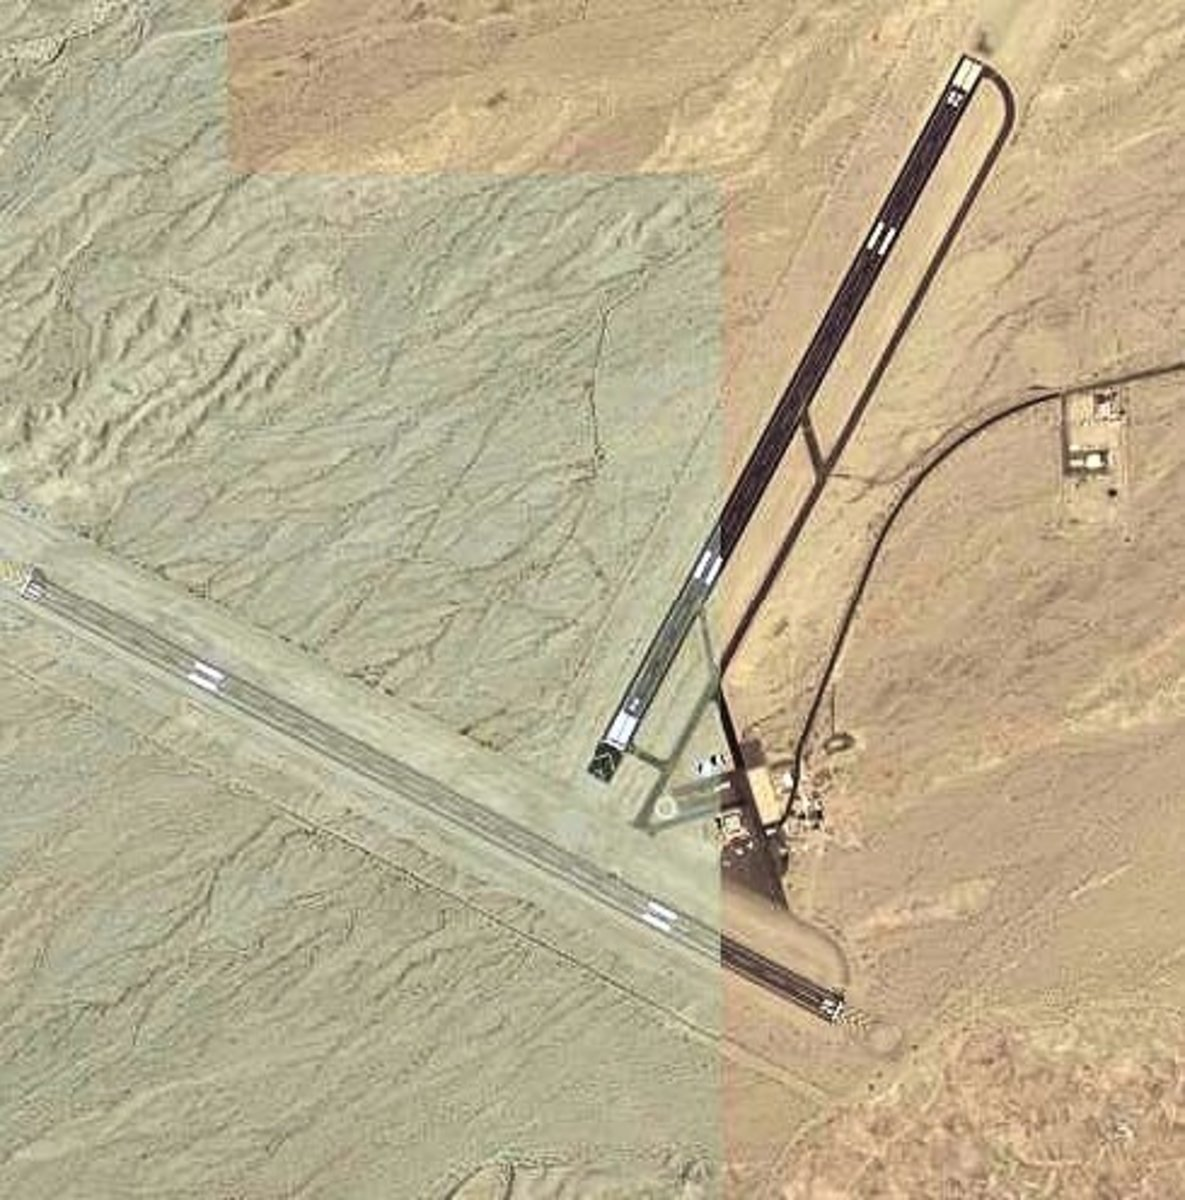 Needles Airport was  photographed by the United States Geological Survey, an agency of the United States Department of Interior.